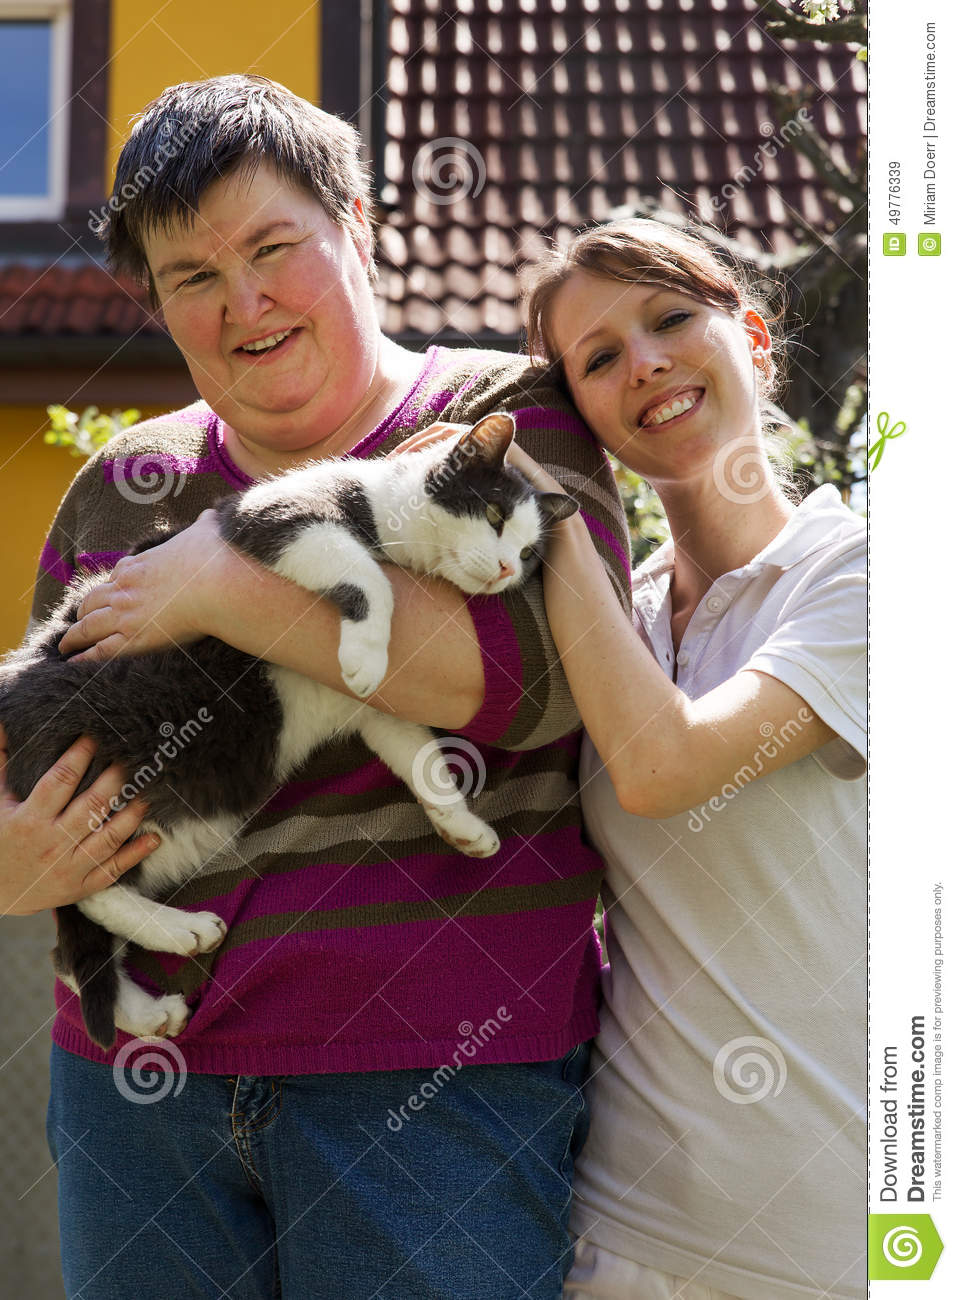 Two women and a cat